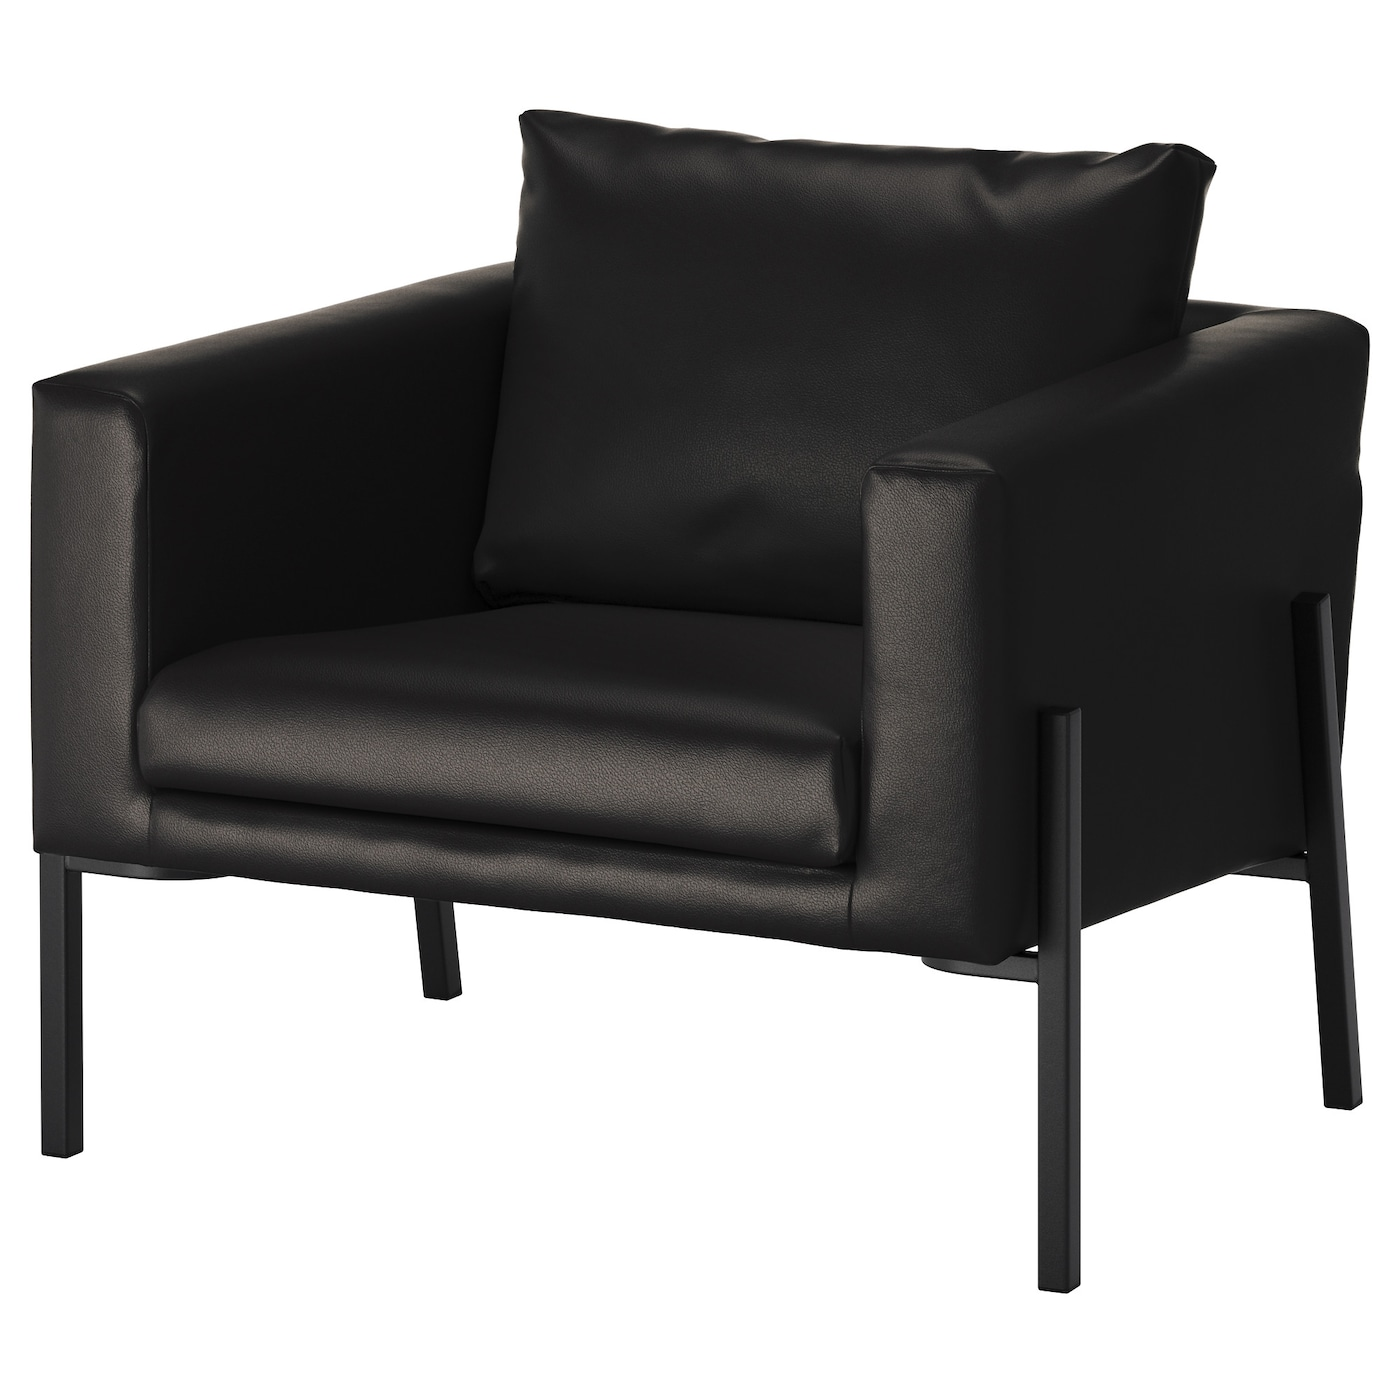 fauteuils tissu enduit fauteuils et m ridiennes ikea. Black Bedroom Furniture Sets. Home Design Ideas